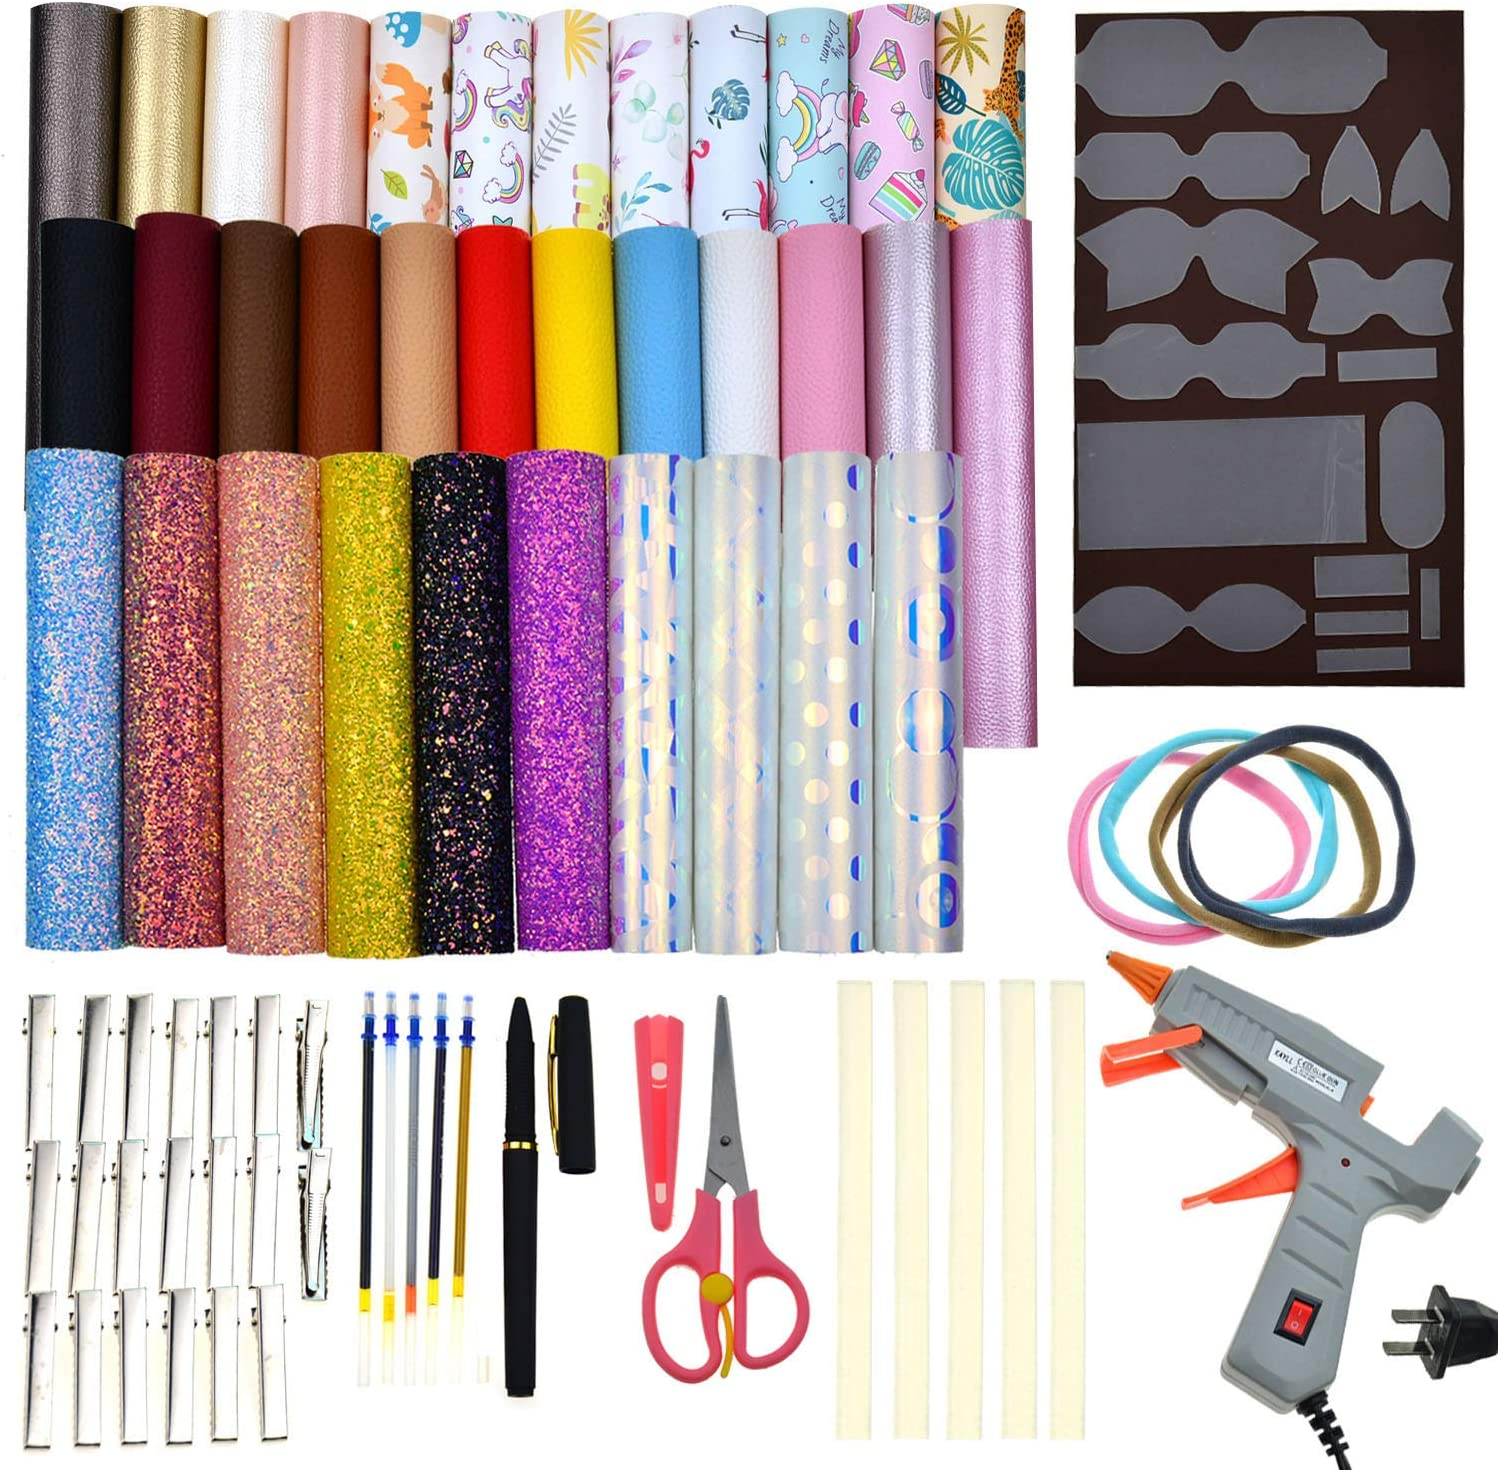 DIY Hair Bows 8x11 Faux Leather Snow White Faux Leather Sheets Earrings DIY Snow White A4 Vinyl Fabric Sheet